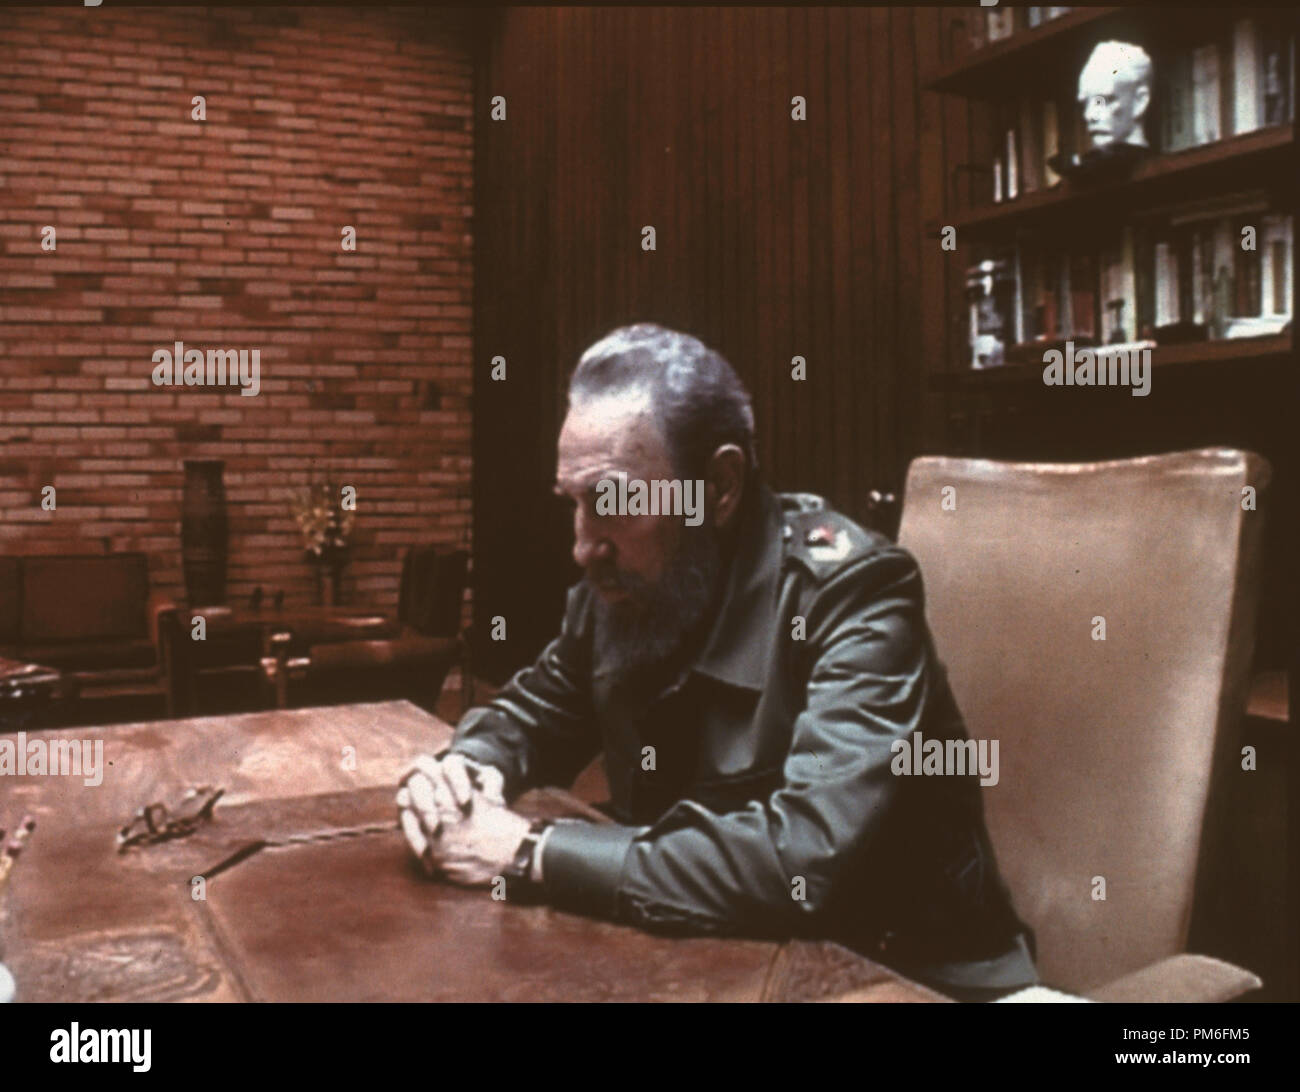 Film Still / Publicity Still from 'Commandante' Fidel Castro © 2003 HBO  File Reference # 30753854THA  For Editorial Use Only -  All Rights Reserved - Stock Image